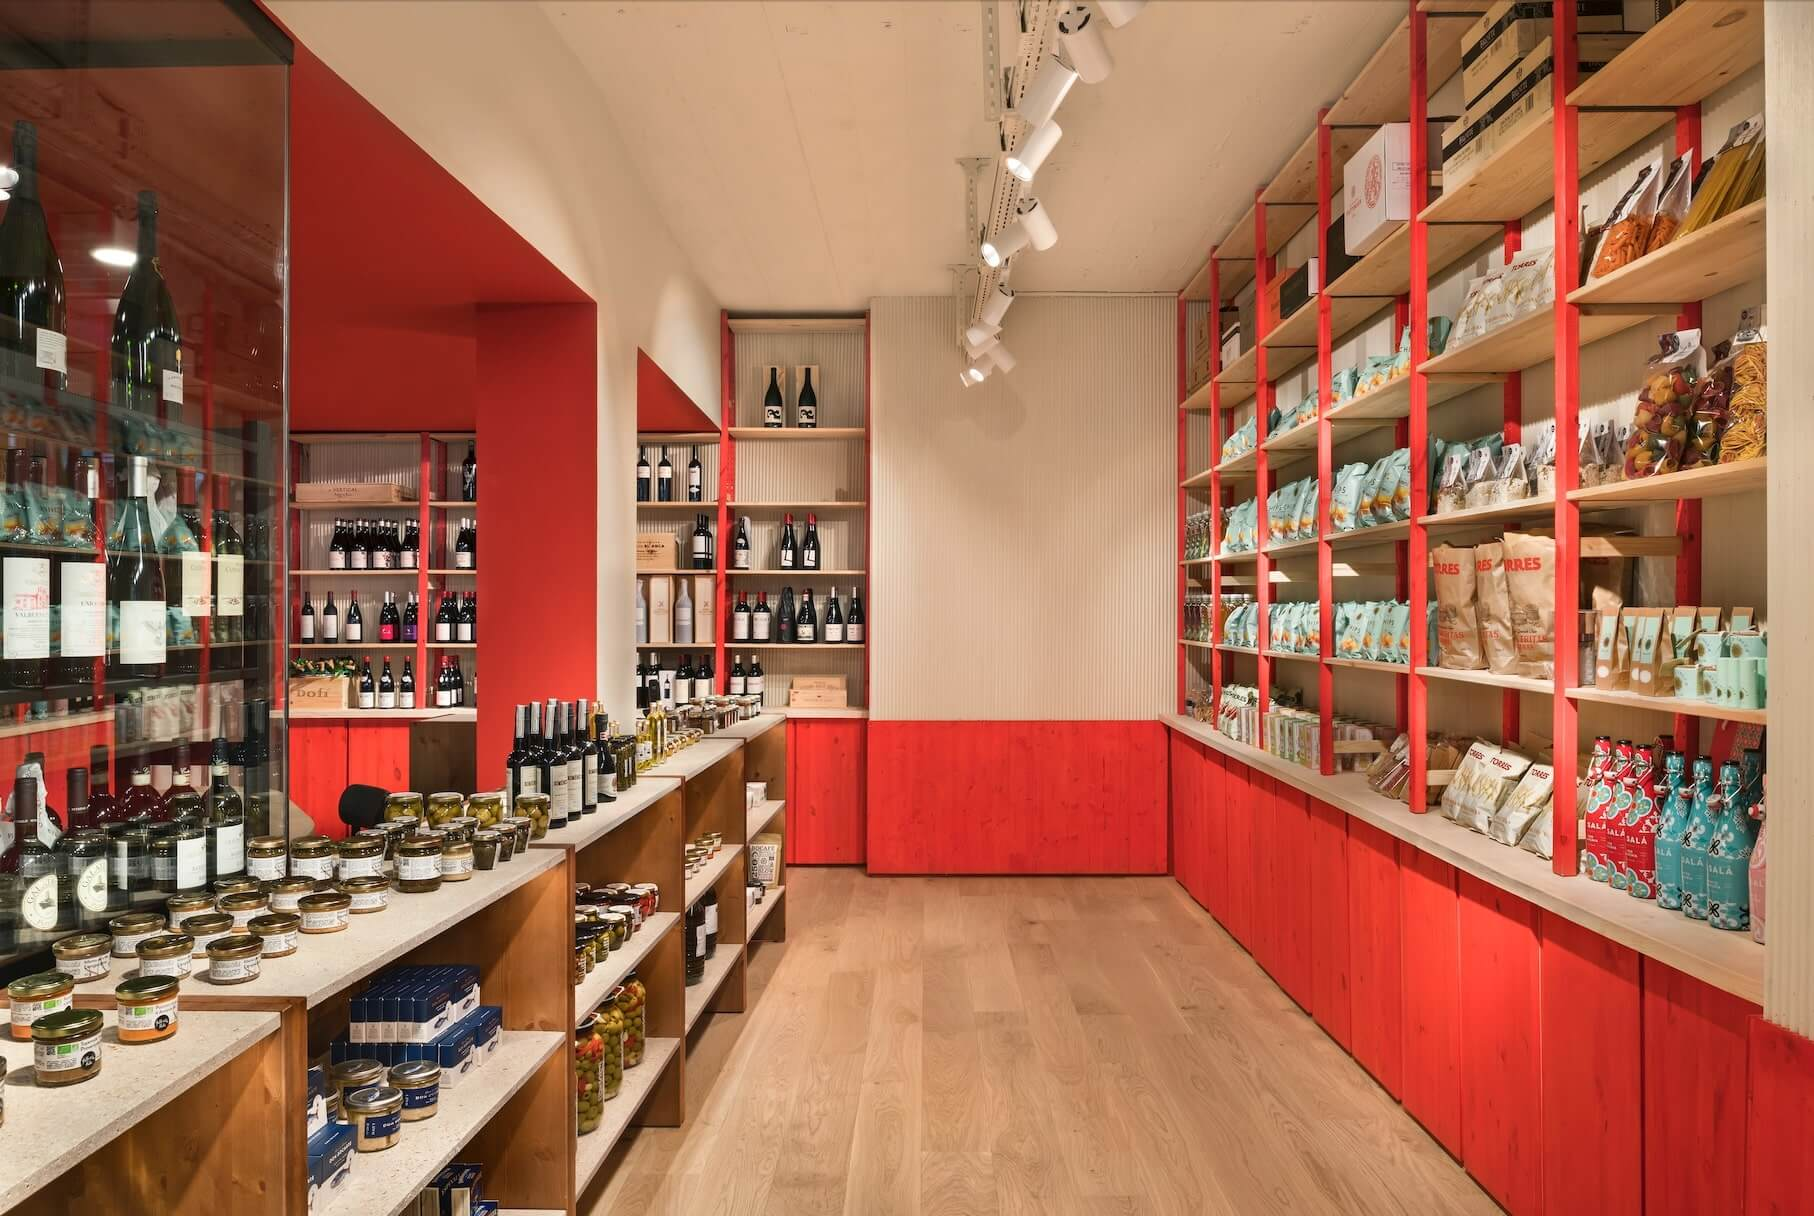 shop design in red and beige wood